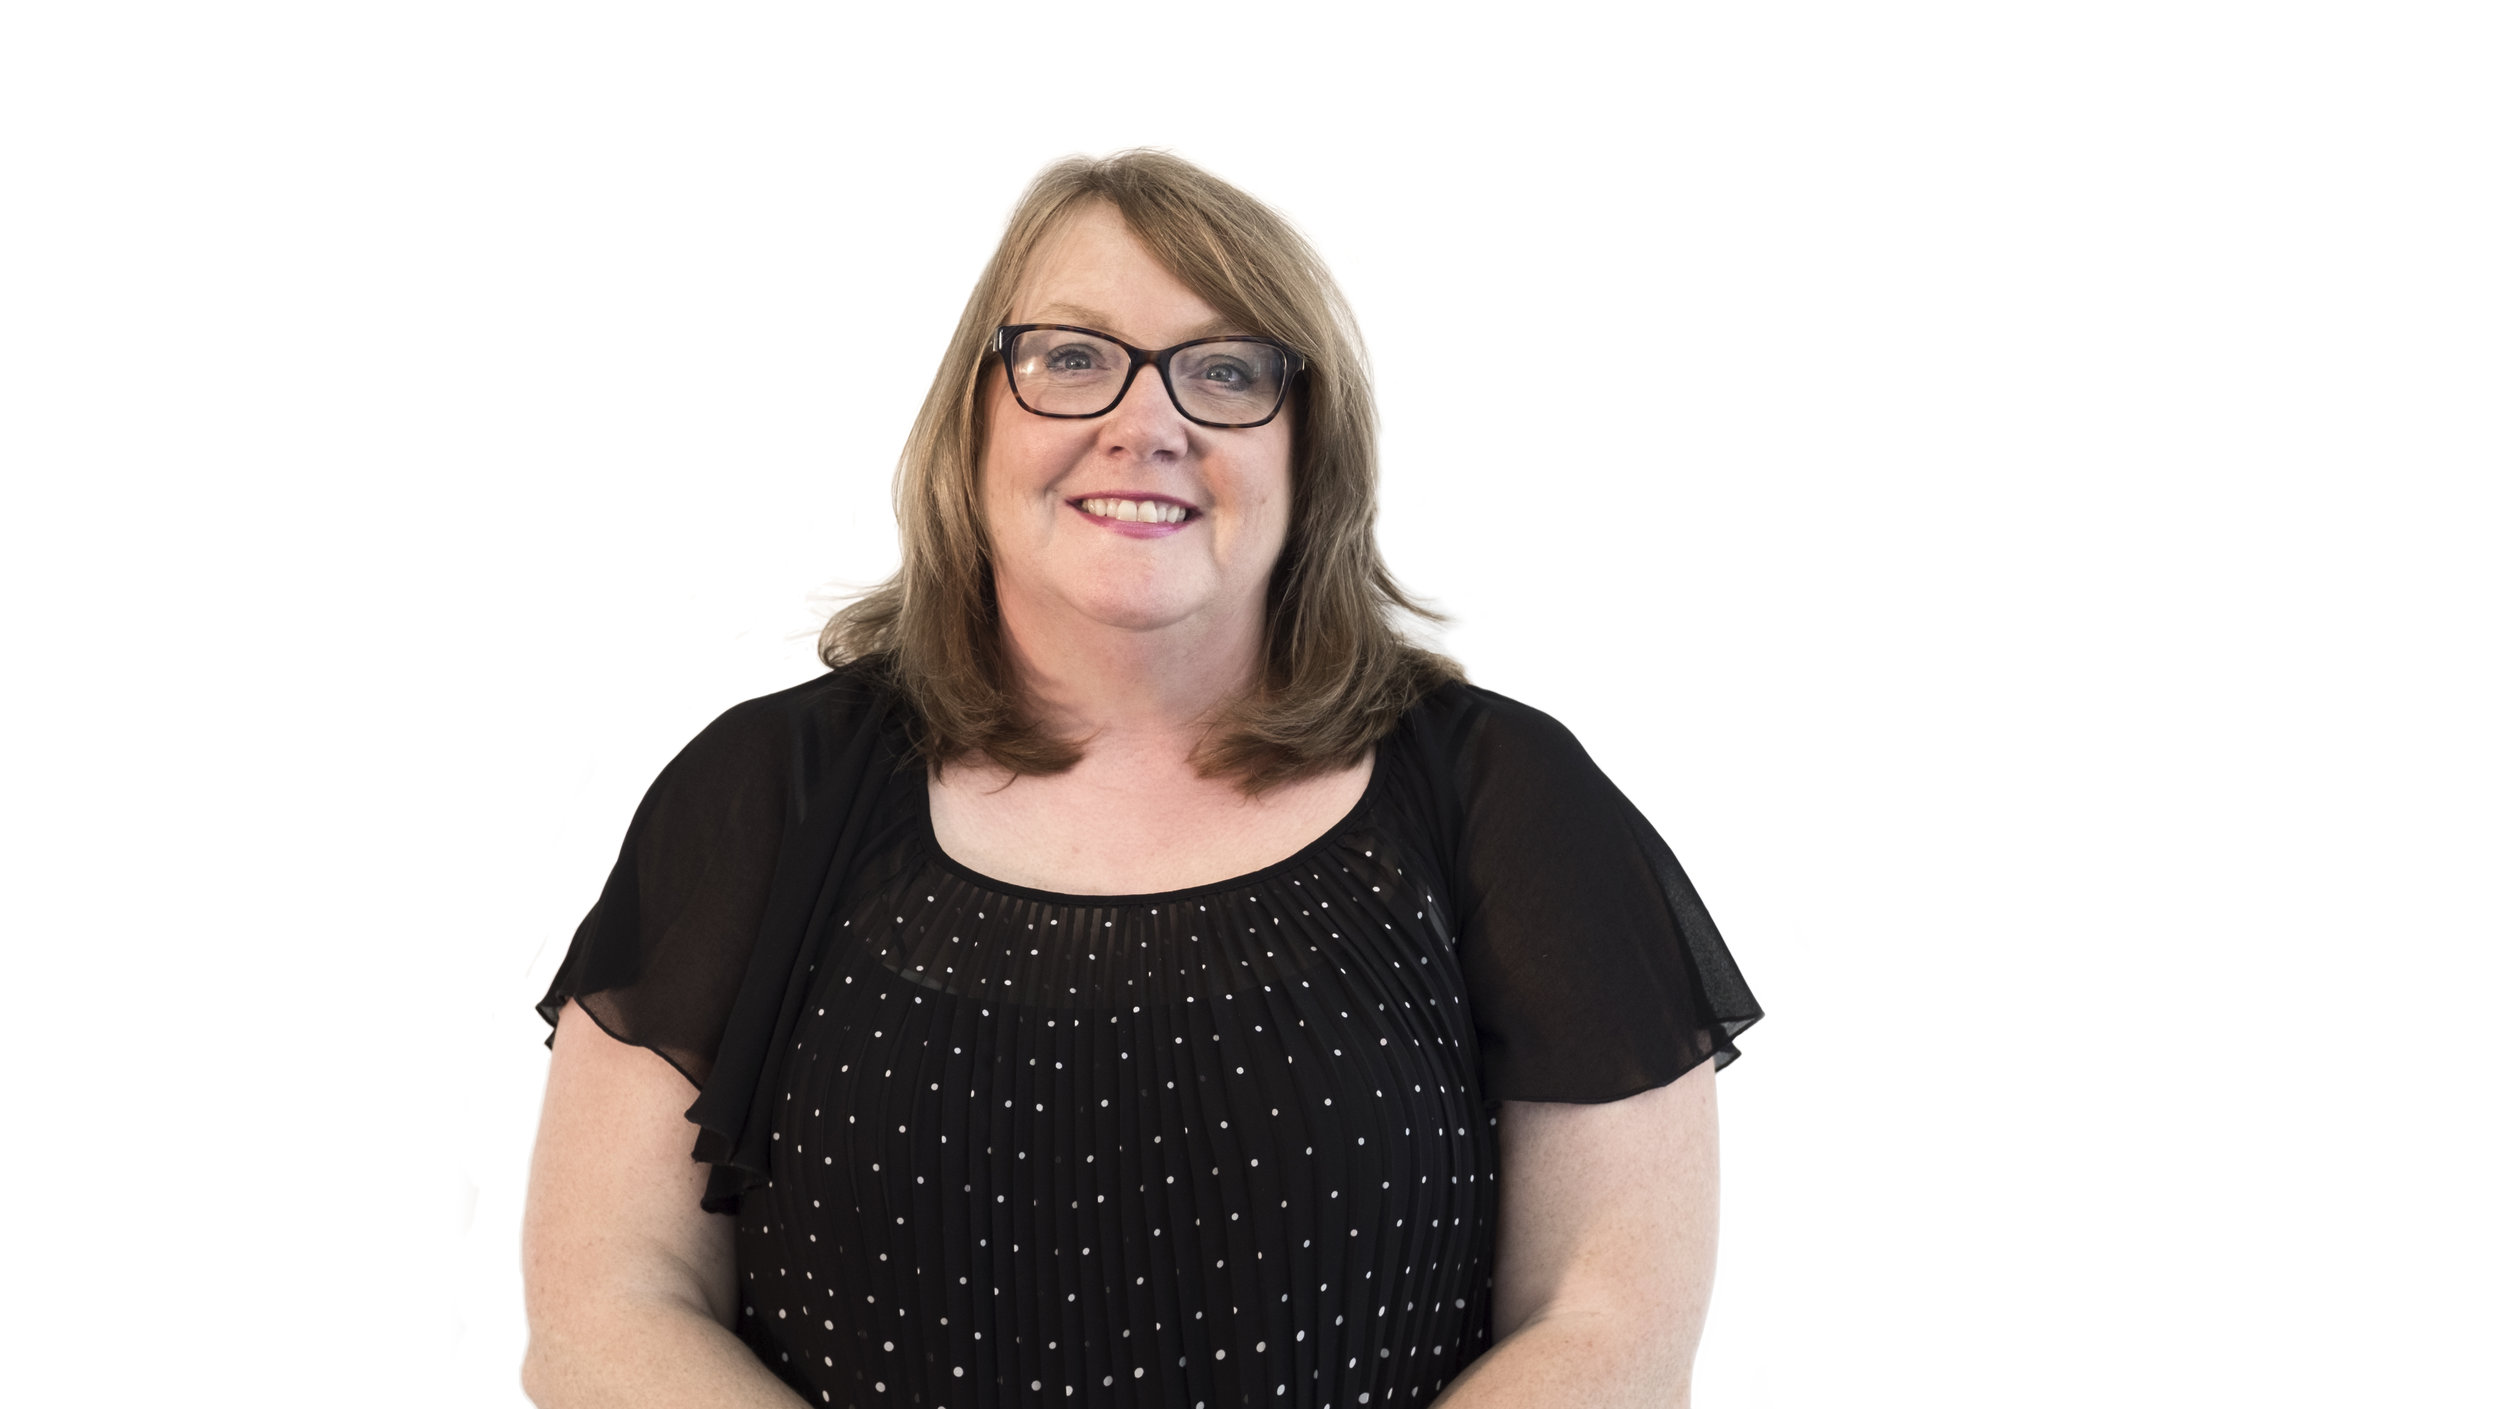 Jaine Chisholm -Studio Admin & Finance Manager - Making sure the team are all facing in the right direction, Jaine ensures we've all got our head screwed on straight. She crosses the T's and dots the I's, and makes sure all the numbers add up in between.